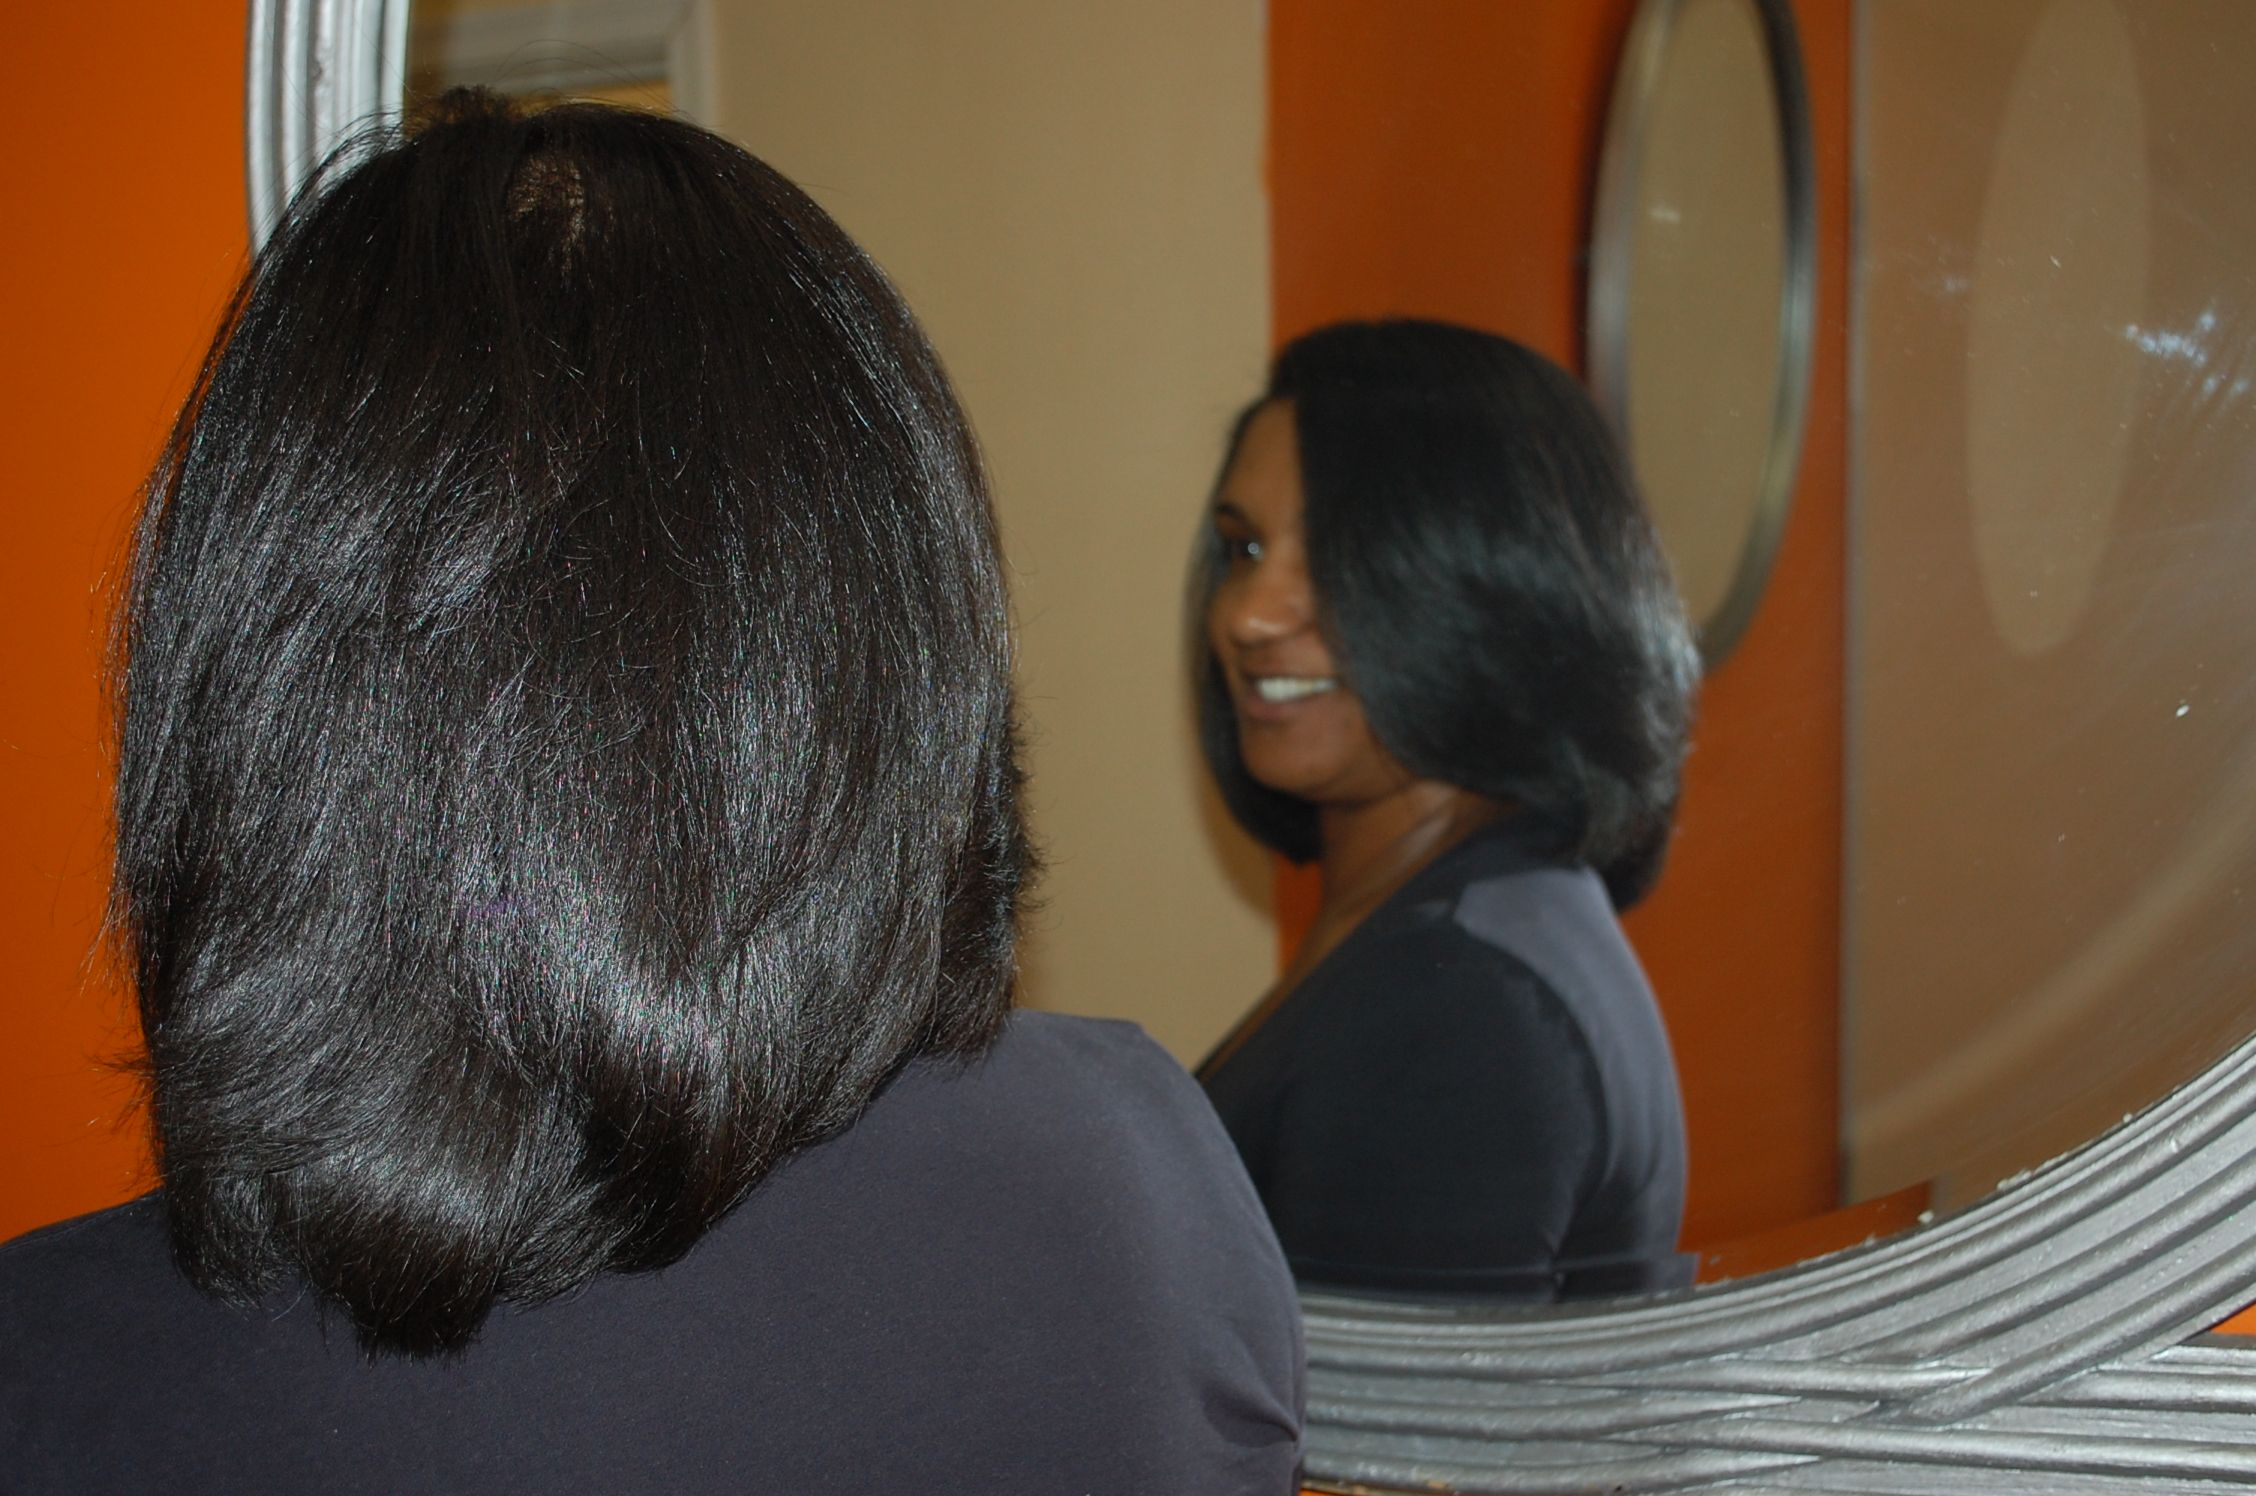 Natural Hair Styles Hair Salon Woodbridge Va Hair Salon Dc Hair Weave Salon Dc Hair Extensions Salon Dc Hair Salon Hair Styles Hair Hair Extension Salon